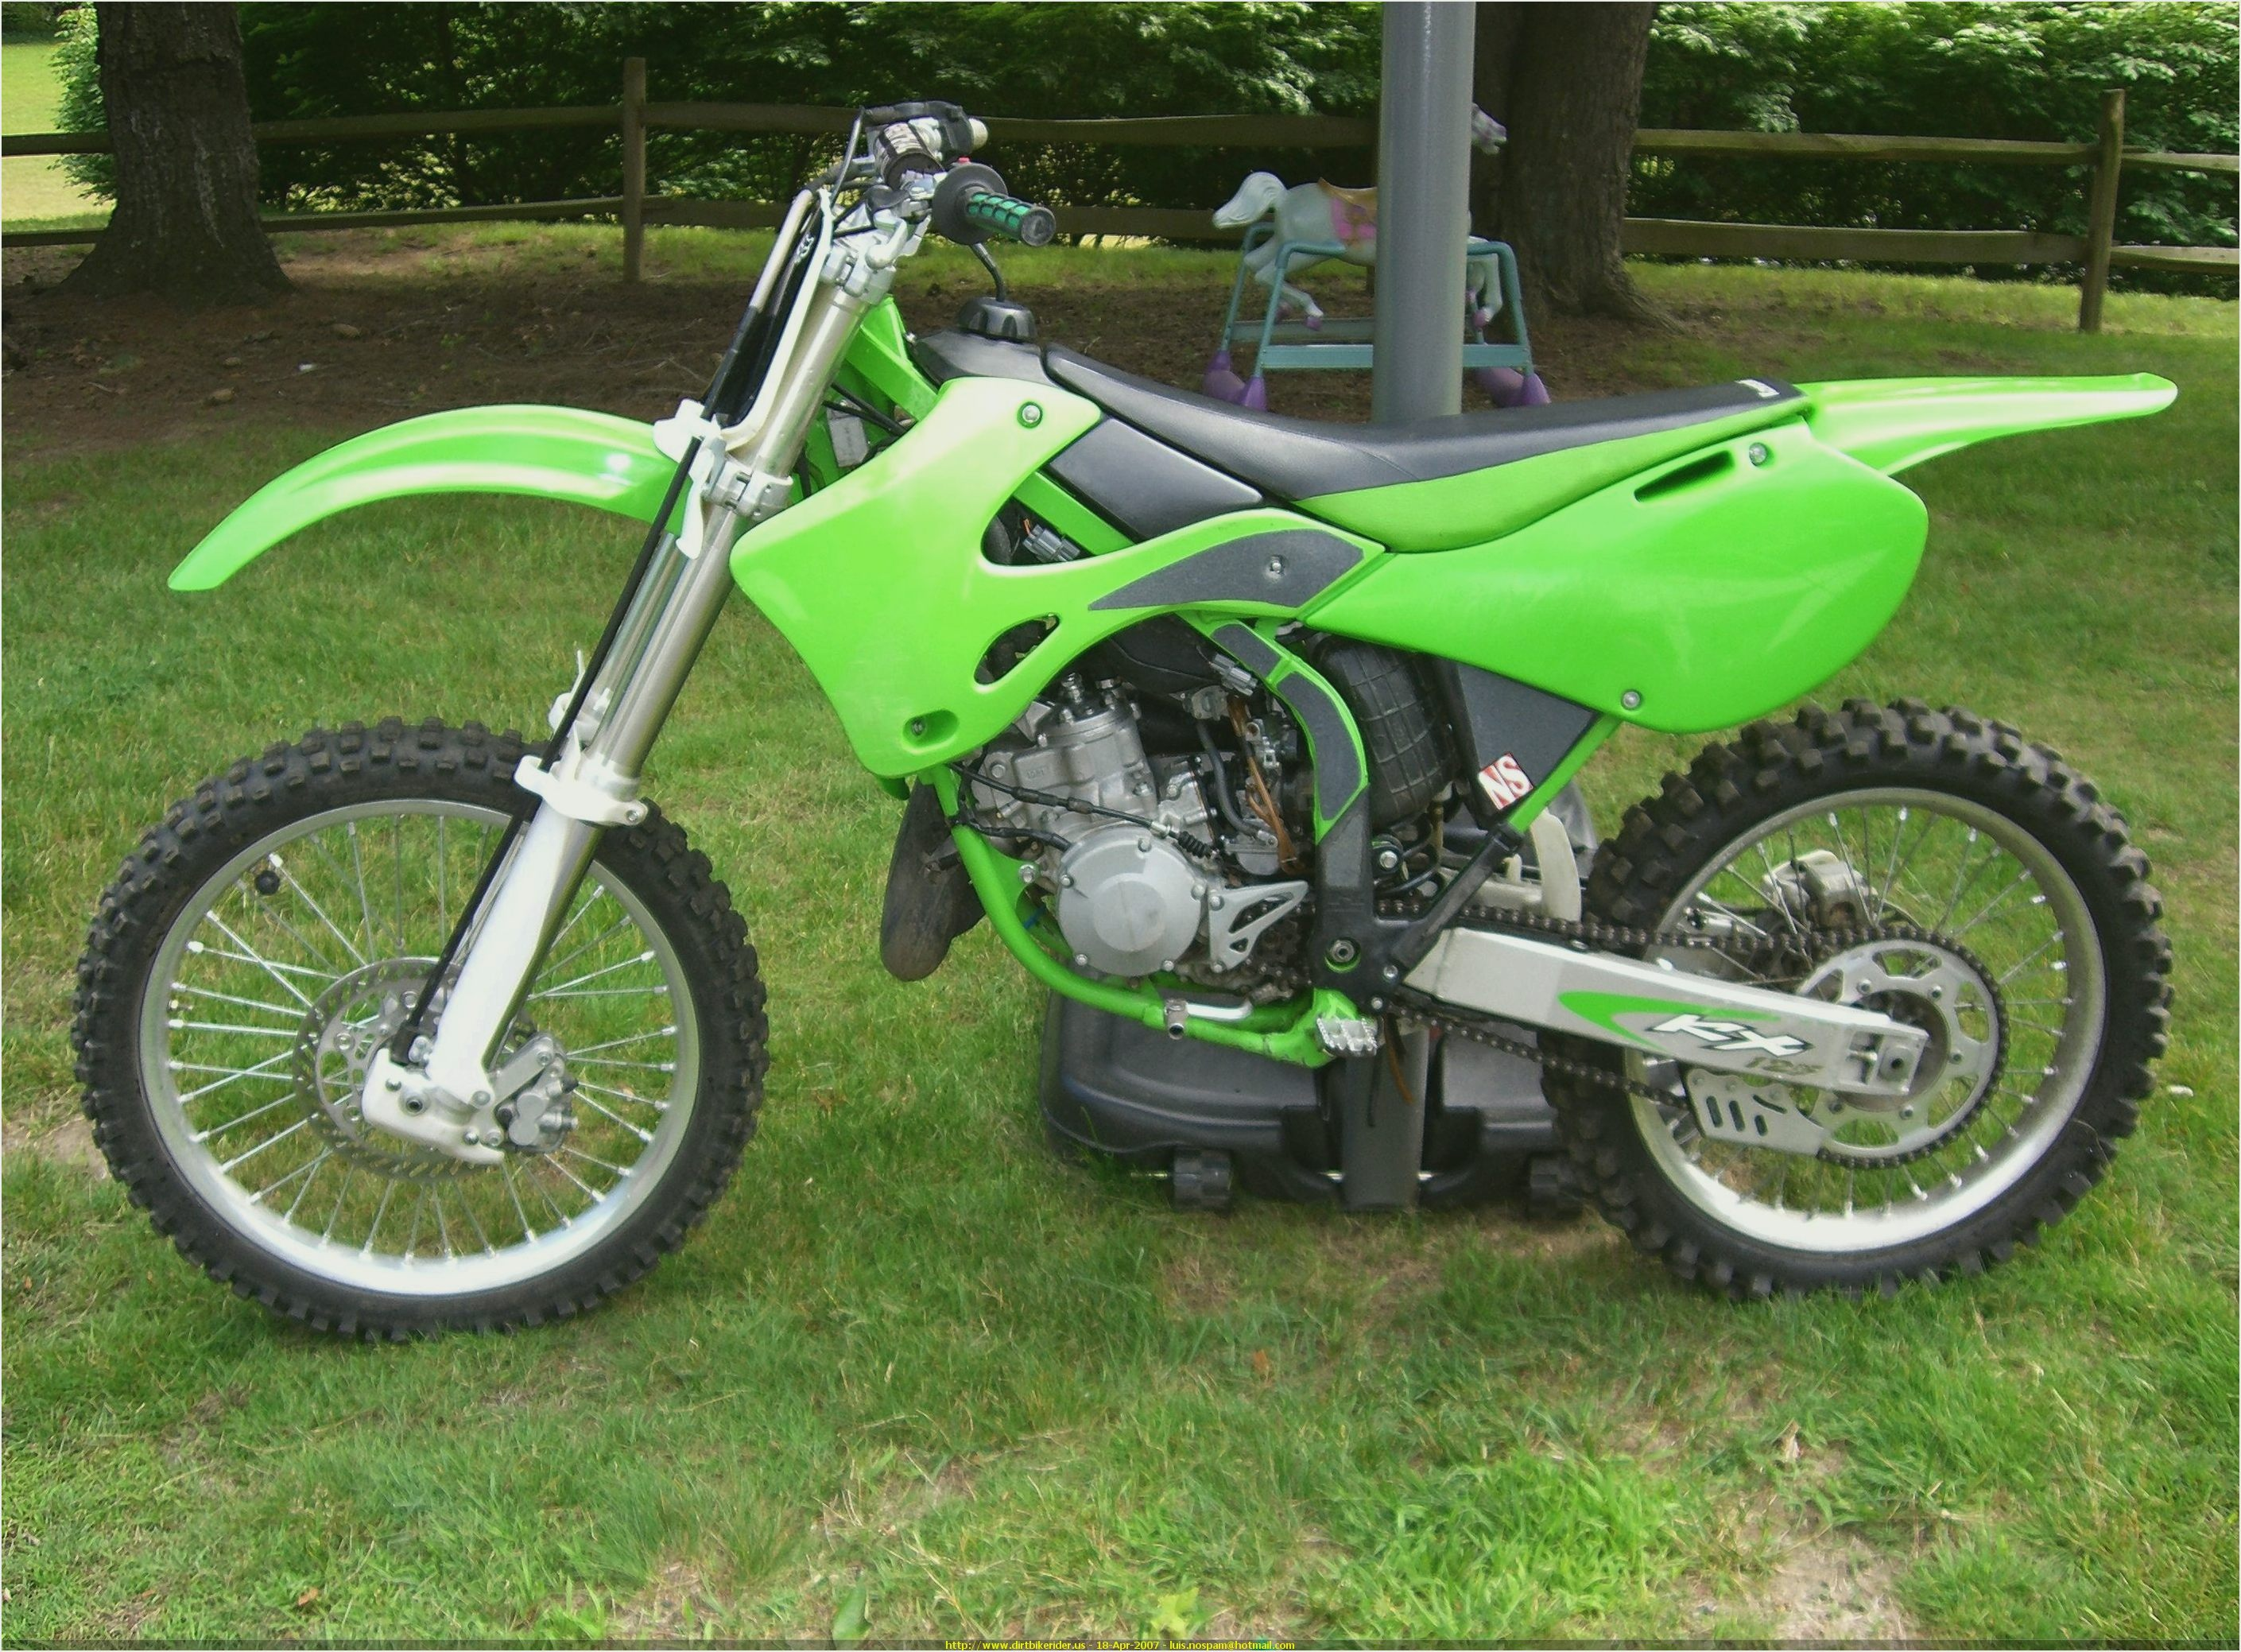 93 kx 125cc motor images - reverse search